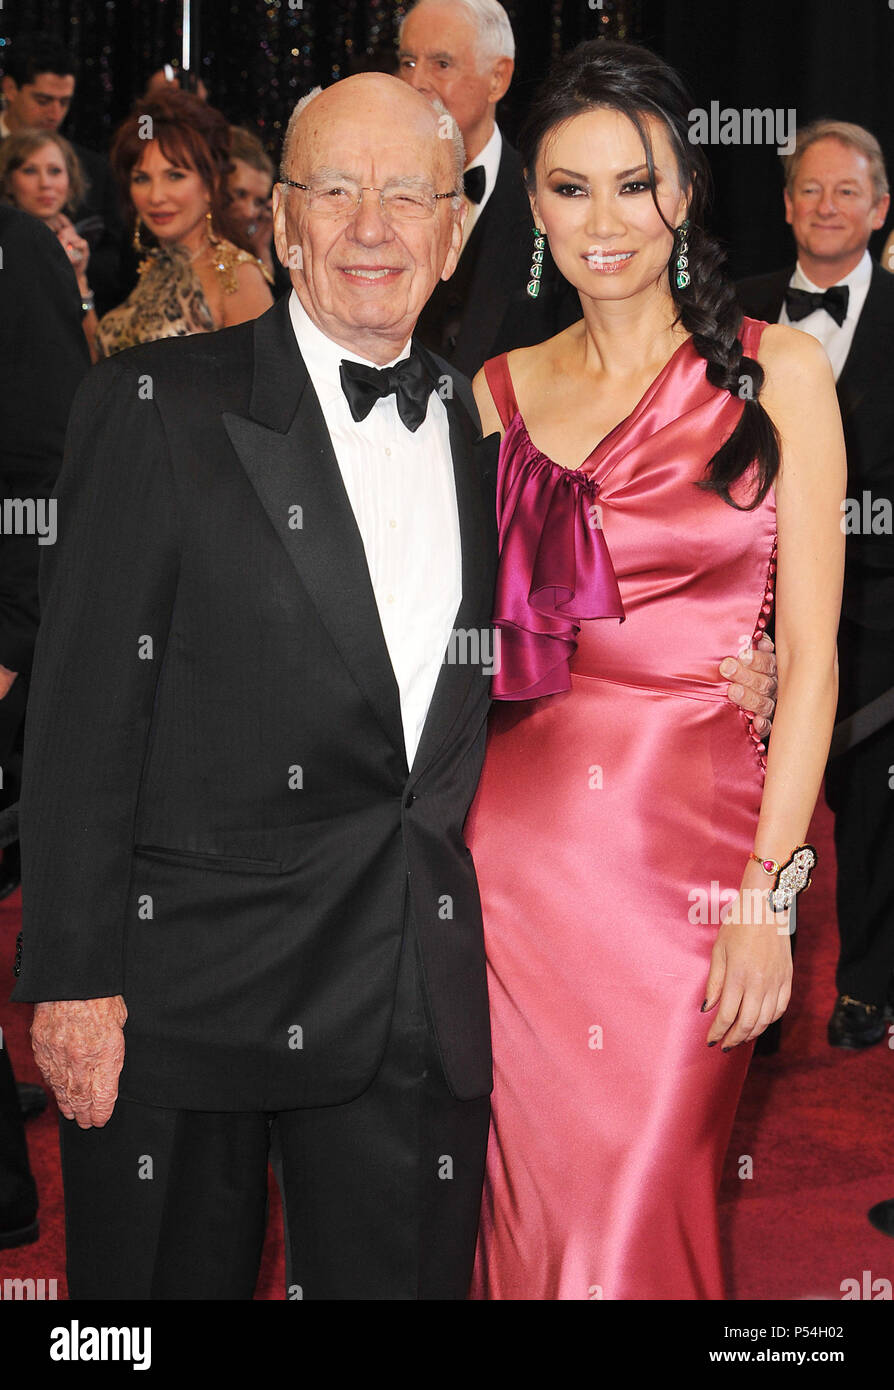 Rupert Murdoch and wife_01 at the 83th Academy Awards at the Kodak Theatre In Los Angeles.Rupert Murdoch and wife_01 ------------- Red Carpet Event, Vertical, USA, Film Industry, Celebrities,  Photography, Bestof, Arts Culture and Entertainment, Topix Celebrities fashion /  Vertical, Best of, Event in Hollywood Life - California,  Red Carpet and backstage, USA, Film Industry, Celebrities,  movie celebrities, TV celebrities, Music celebrities, Photography, Bestof, Arts Culture and Entertainment,  Topix, vertical,  family from from the year , 2011, inquiry tsuni@Gamma-USA.com Husband and wife - Stock Image